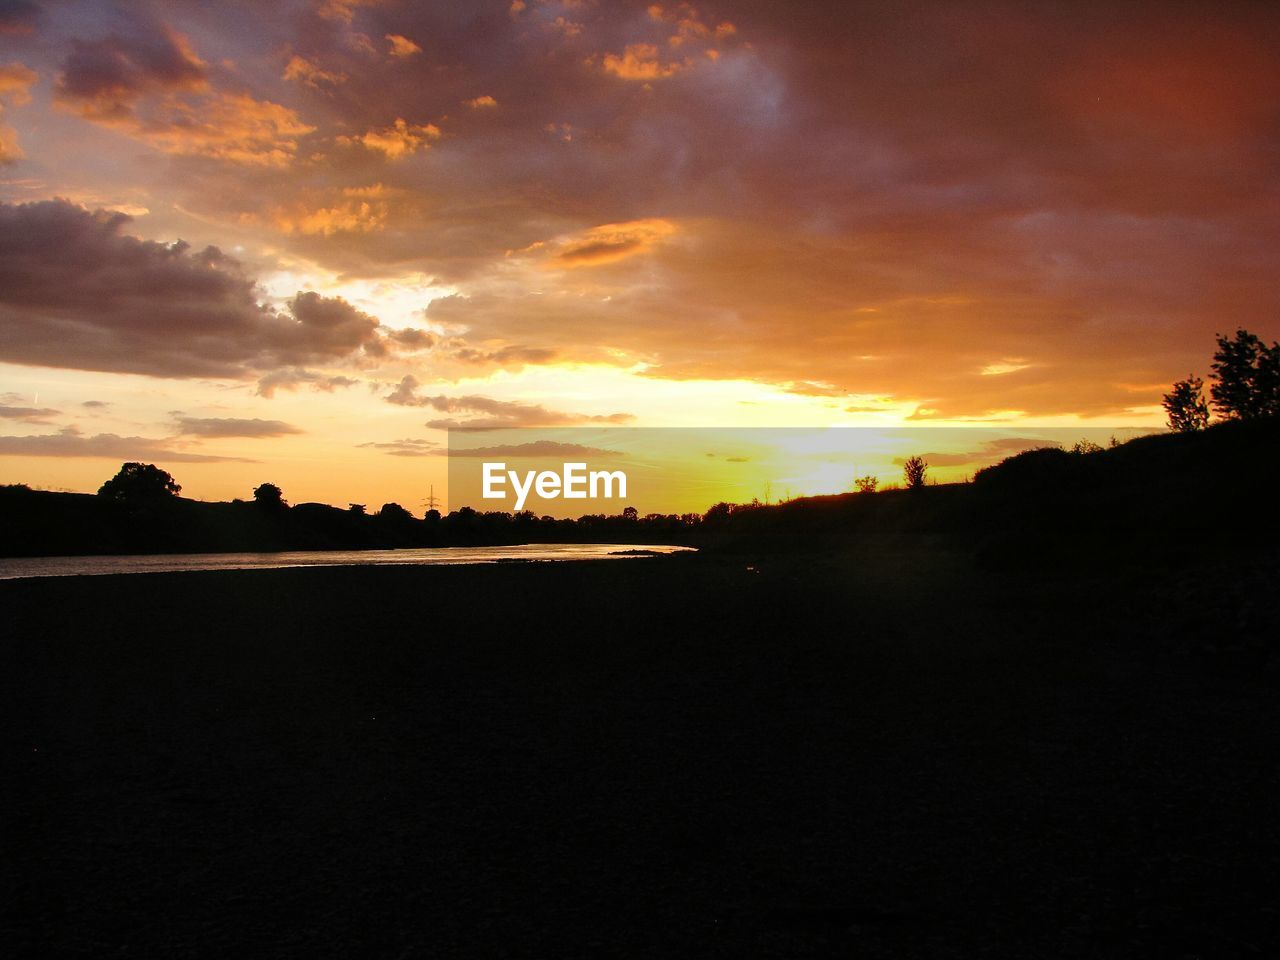 sunset, sky, cloud - sky, silhouette, tranquility, beauty in nature, tranquil scene, scenics - nature, orange color, nature, environment, landscape, no people, idyllic, non-urban scene, land, sun, outdoors, tree, dramatic sky